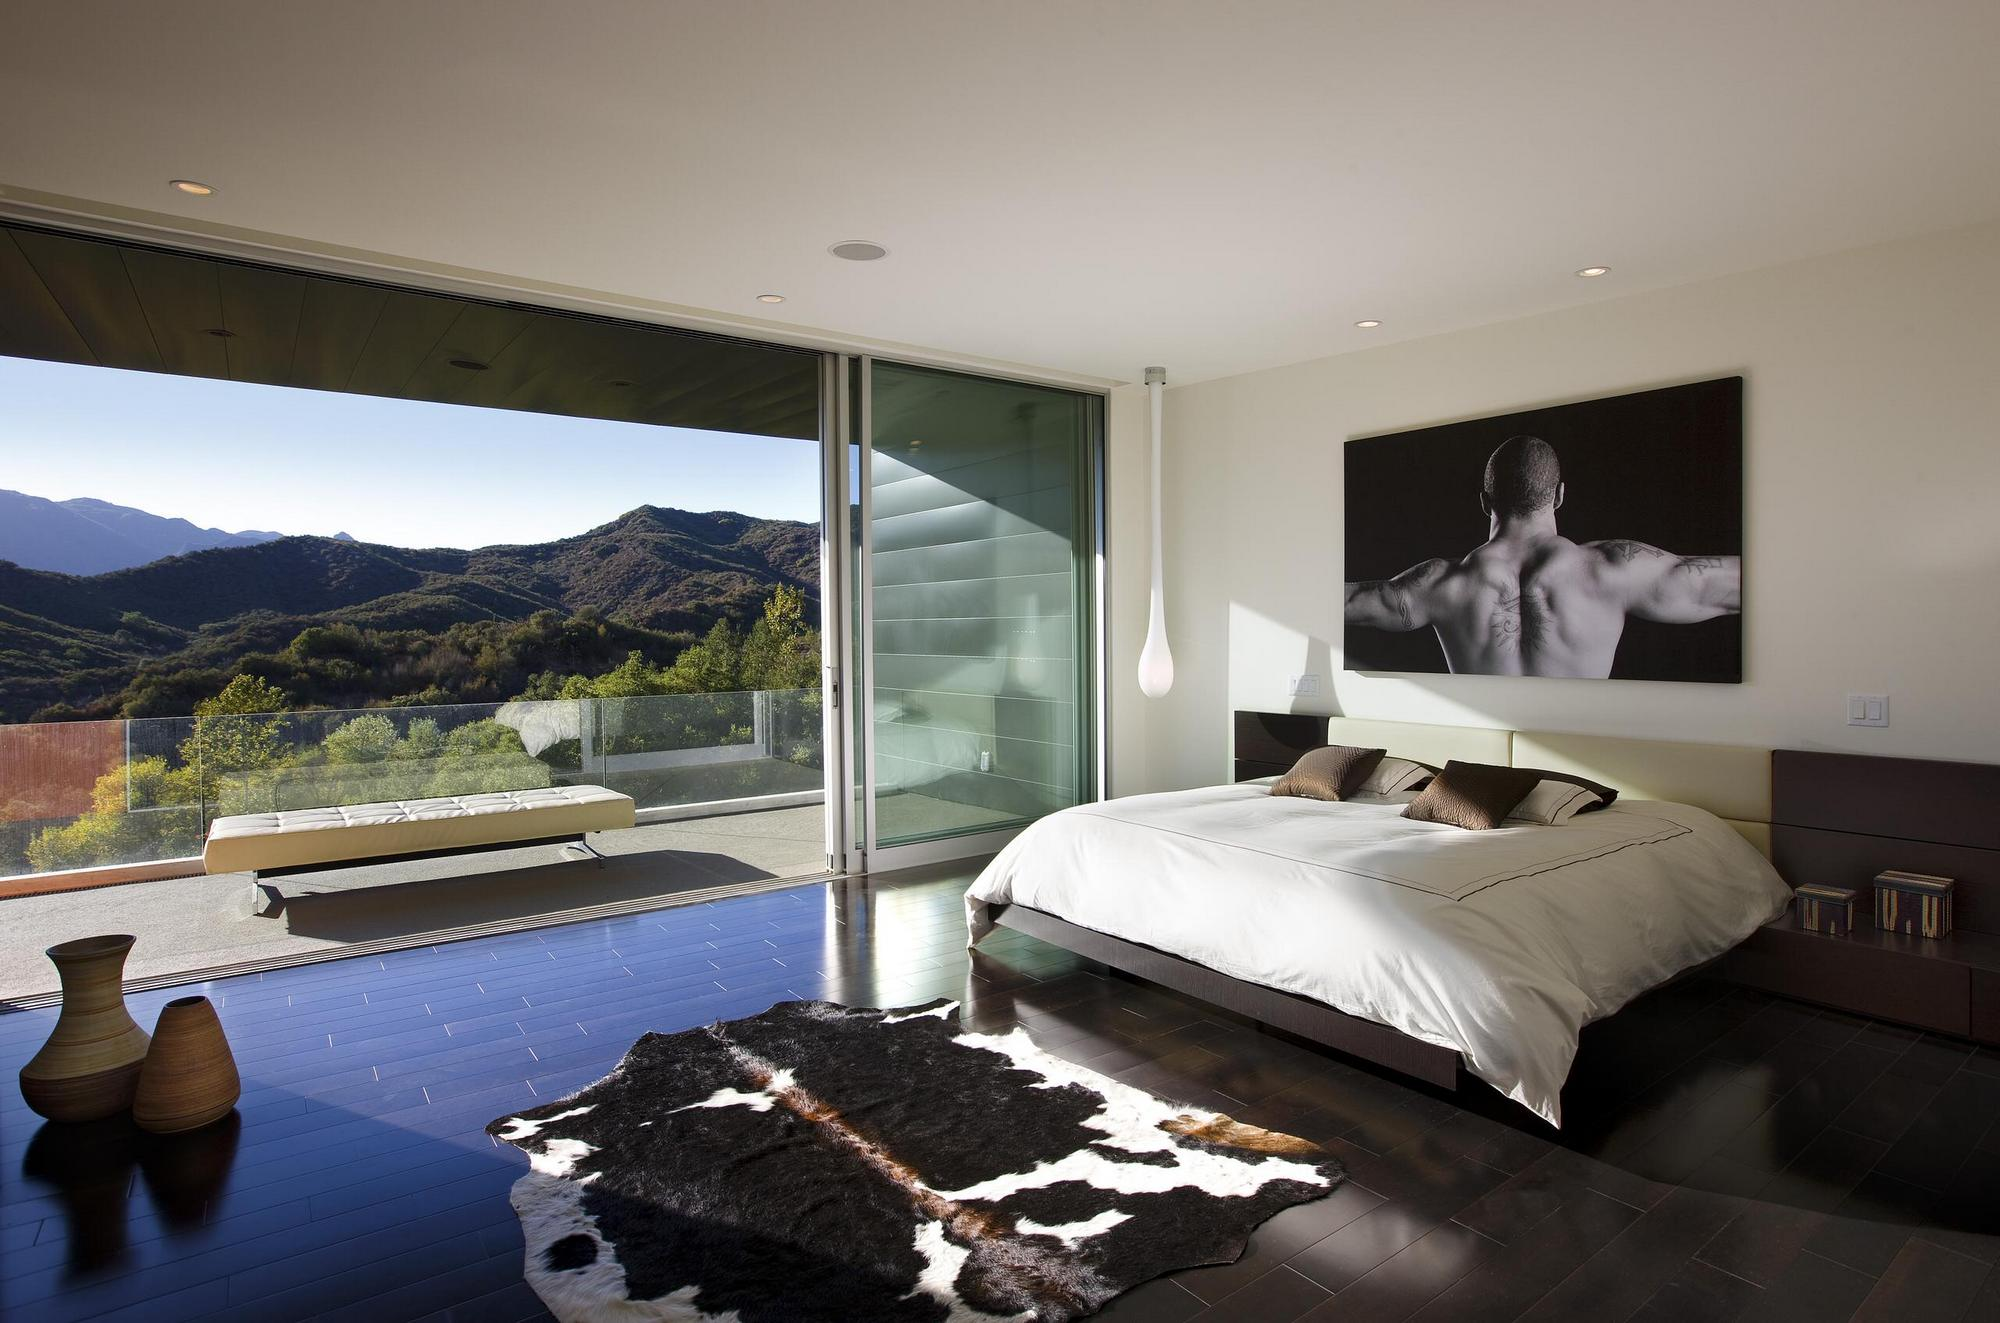 Bedroom Design With a Floor-to-Ceiling Windows and Mountain View